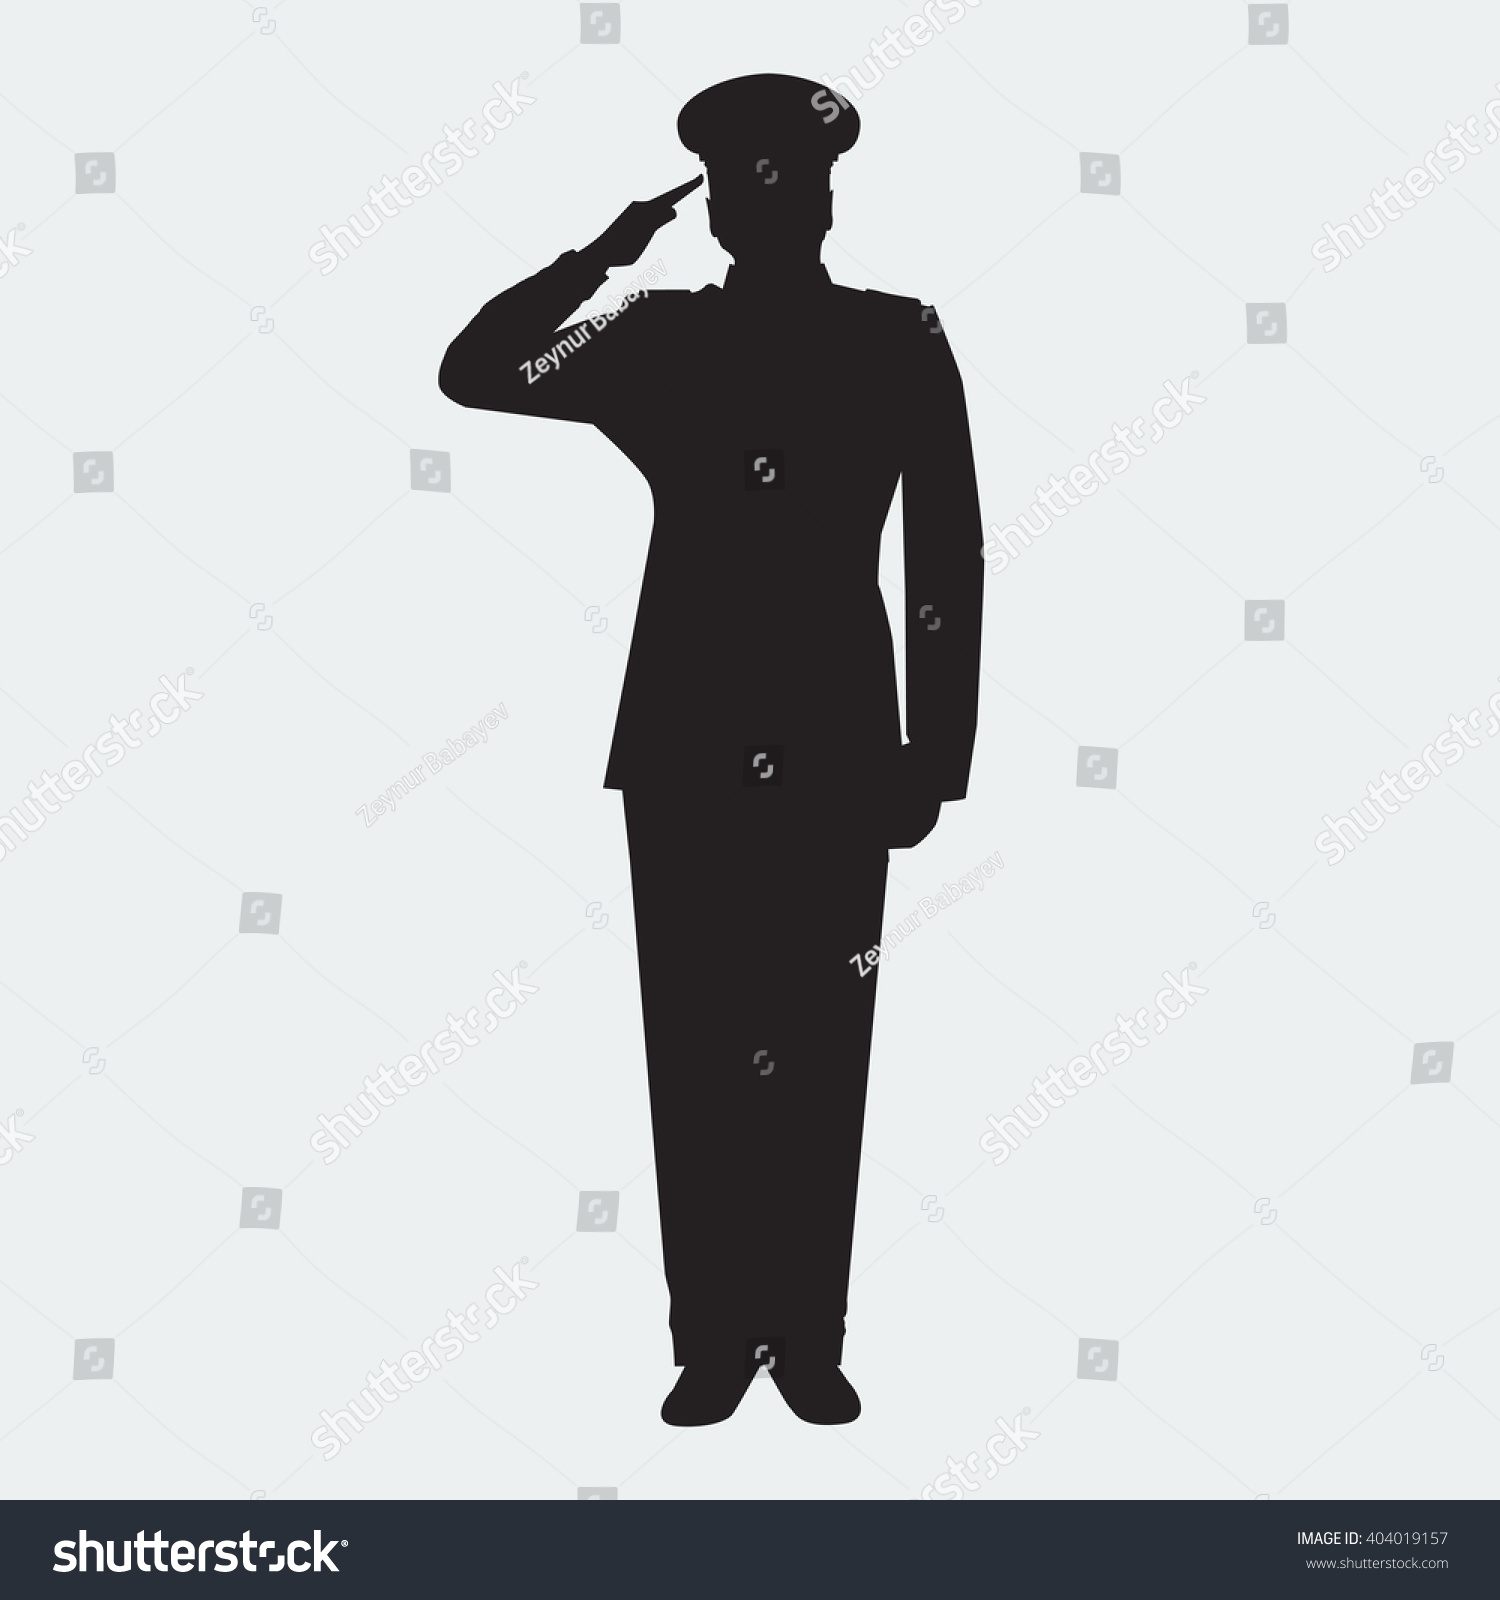 Illustrated Army General Silhouette Hand Gesture Stock ...